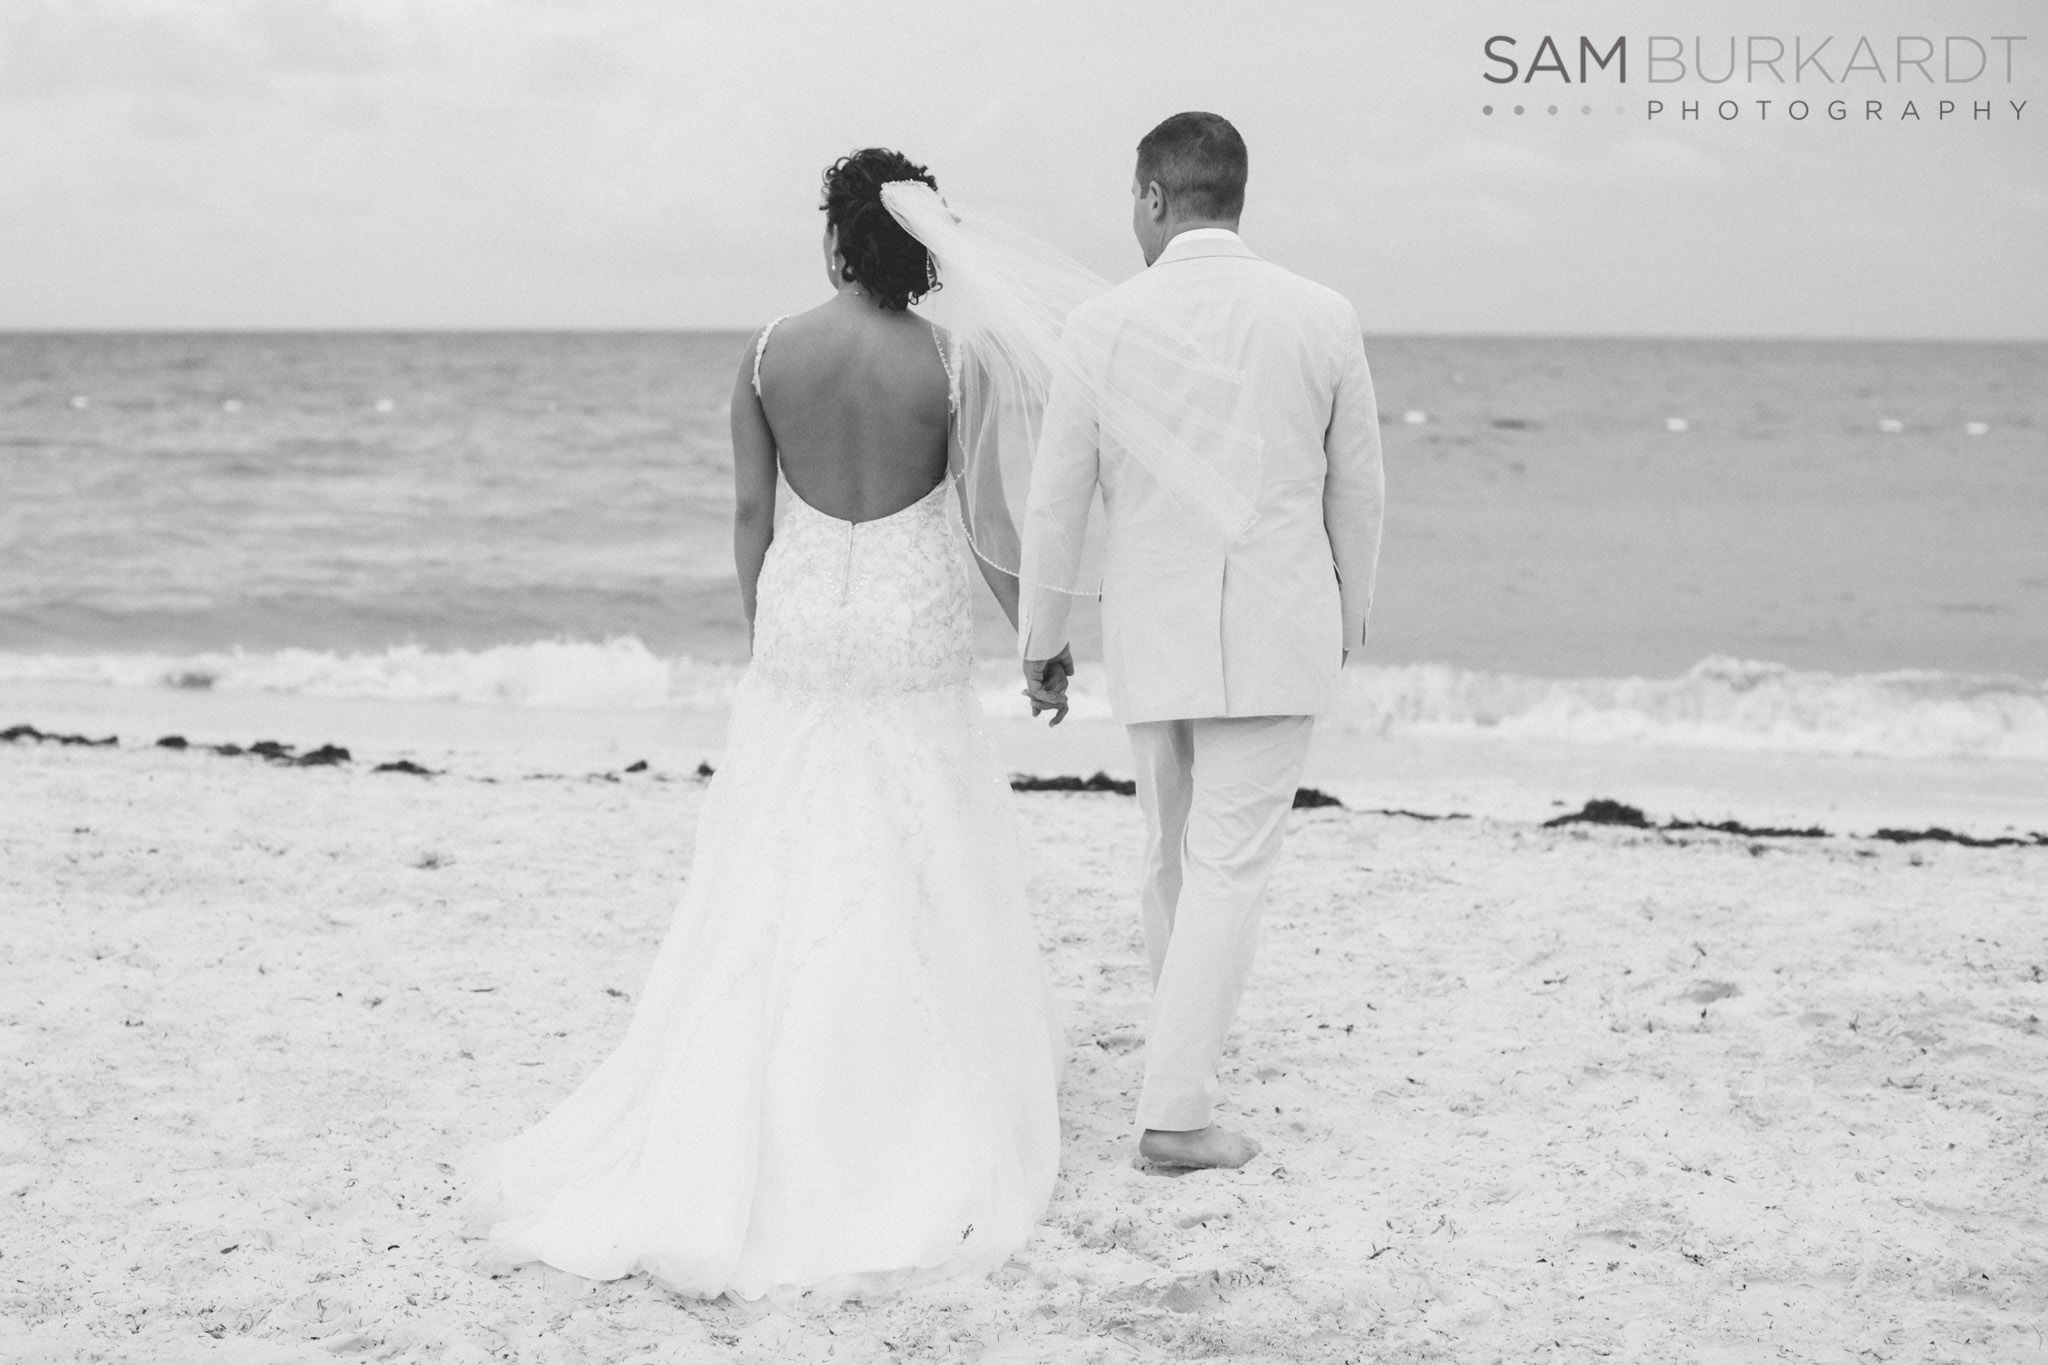 samburkardt-mexico-wedding-beach-0047.jpg